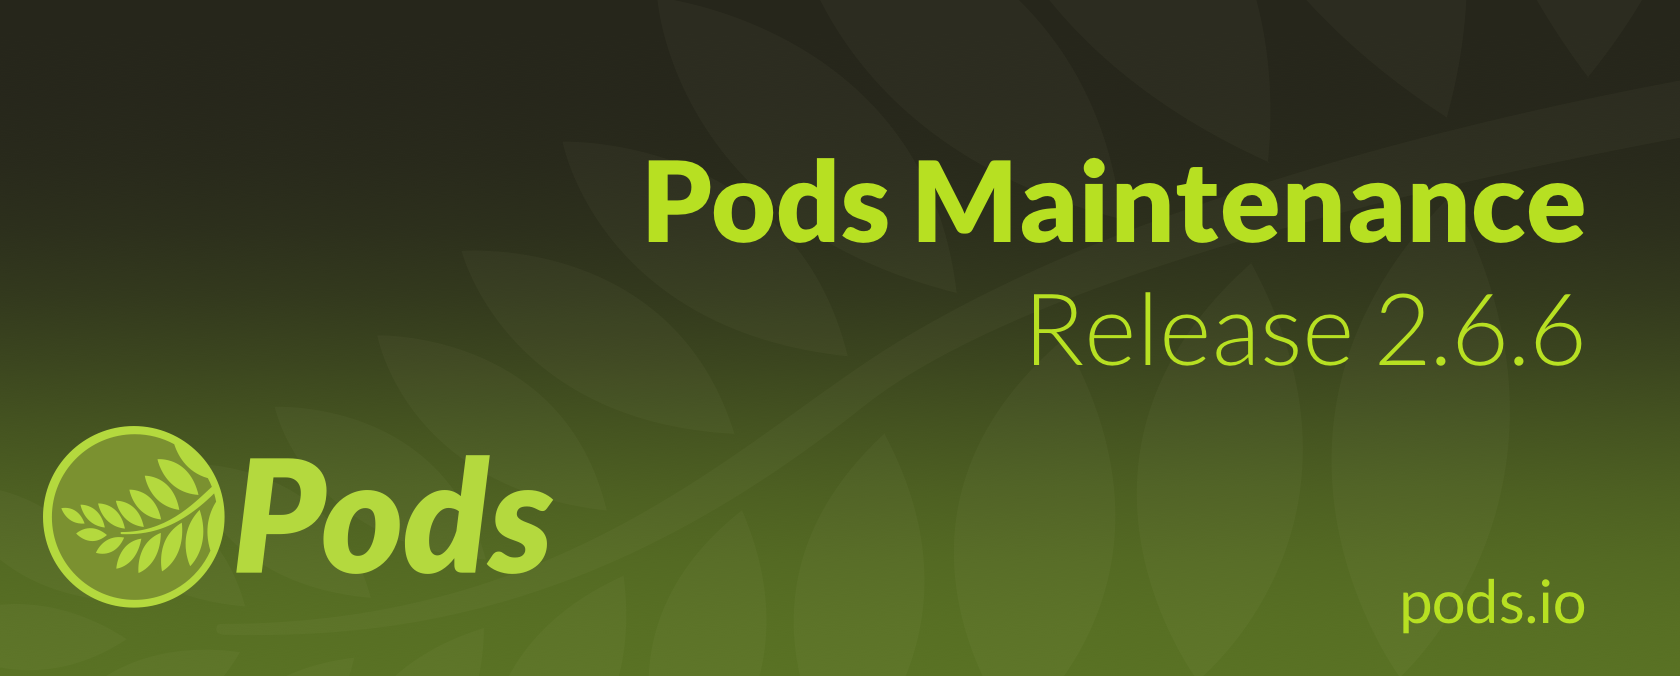 Pods Maintenance Release 2.6.6, Pods Alternative Cache 2.0, Pods SEO 2.0, and Pods Gravity Forms 1.1 - Pods Framework